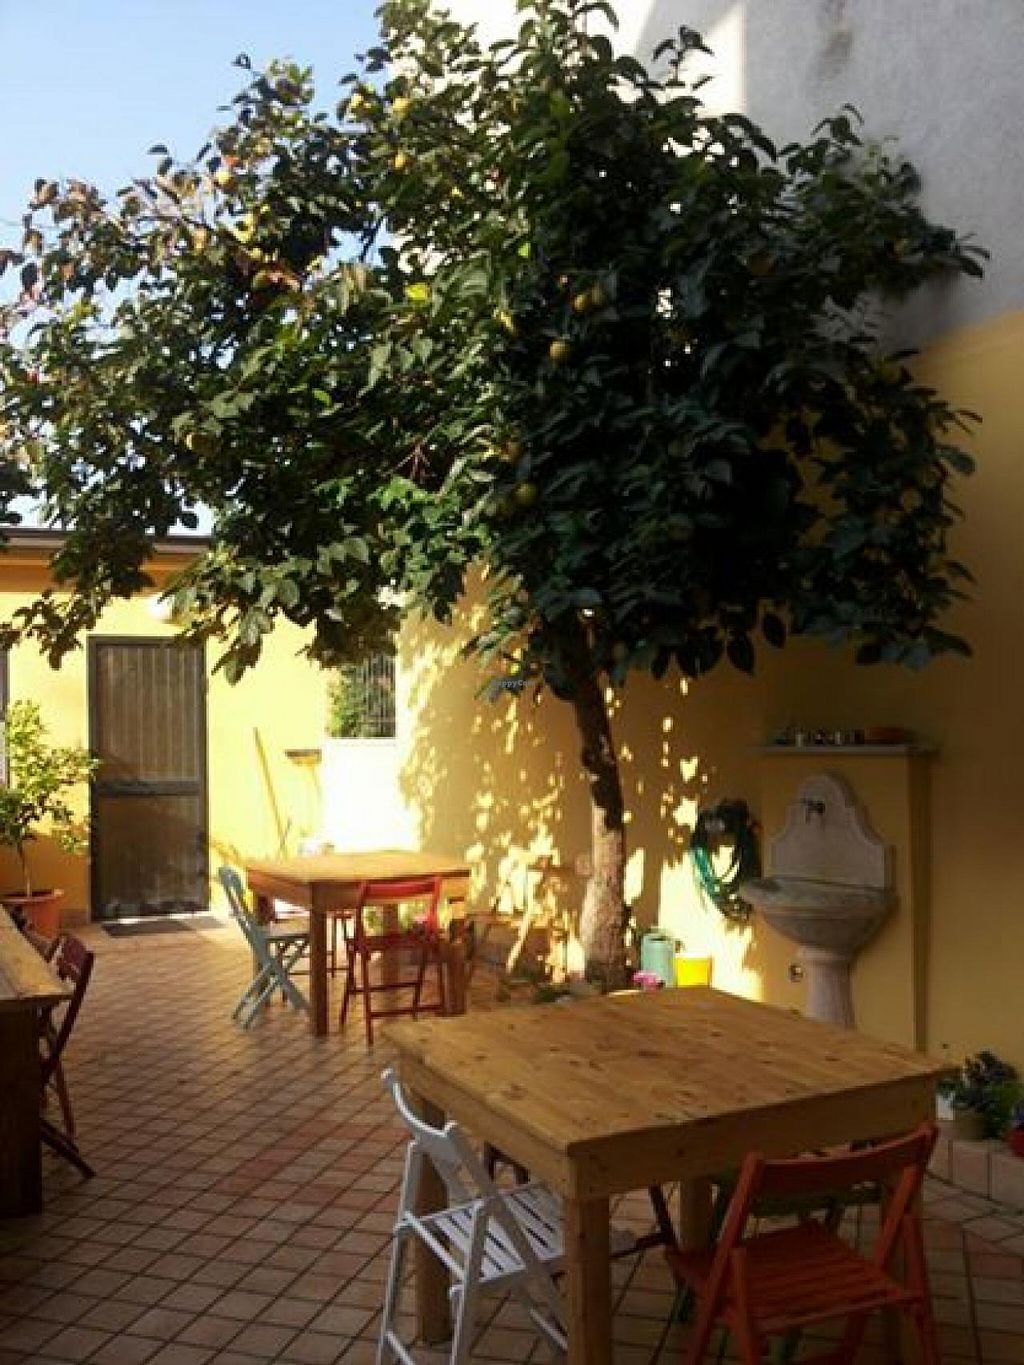 """Photo of CLOSED: Veggy Days Desenzano  by <a href=""""/members/profile/veg-geko"""">veg-geko</a> <br/>Outdoor seating <br/> December 27, 2014  - <a href='/contact/abuse/image/54084/88807'>Report</a>"""